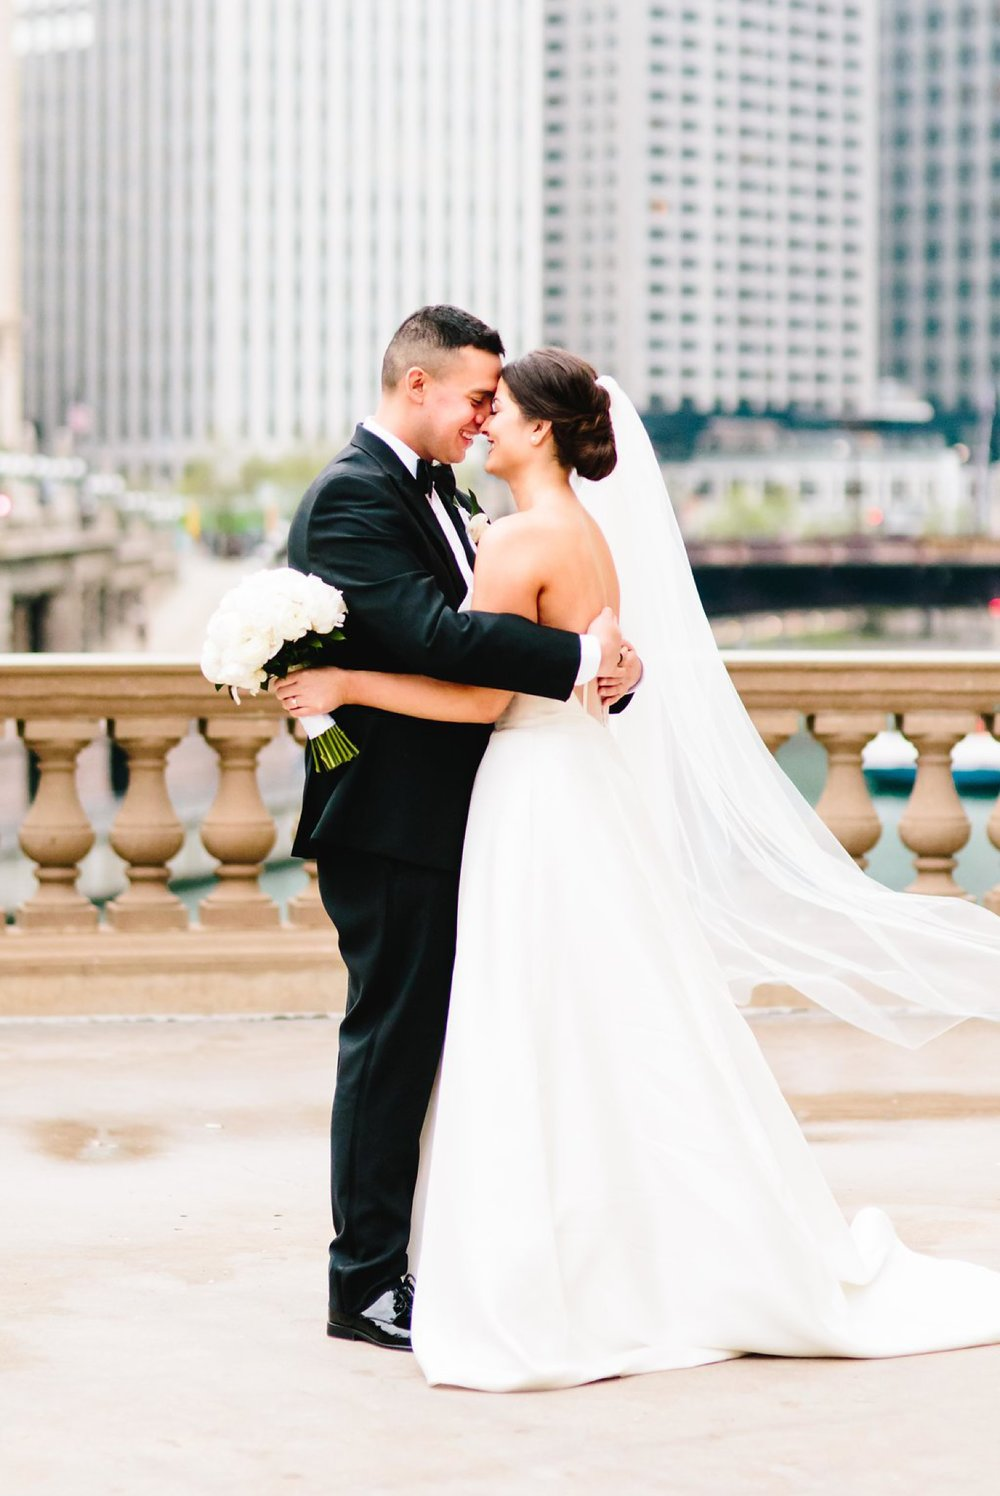 chicago-fine-art-wedding-photography-sherwood52